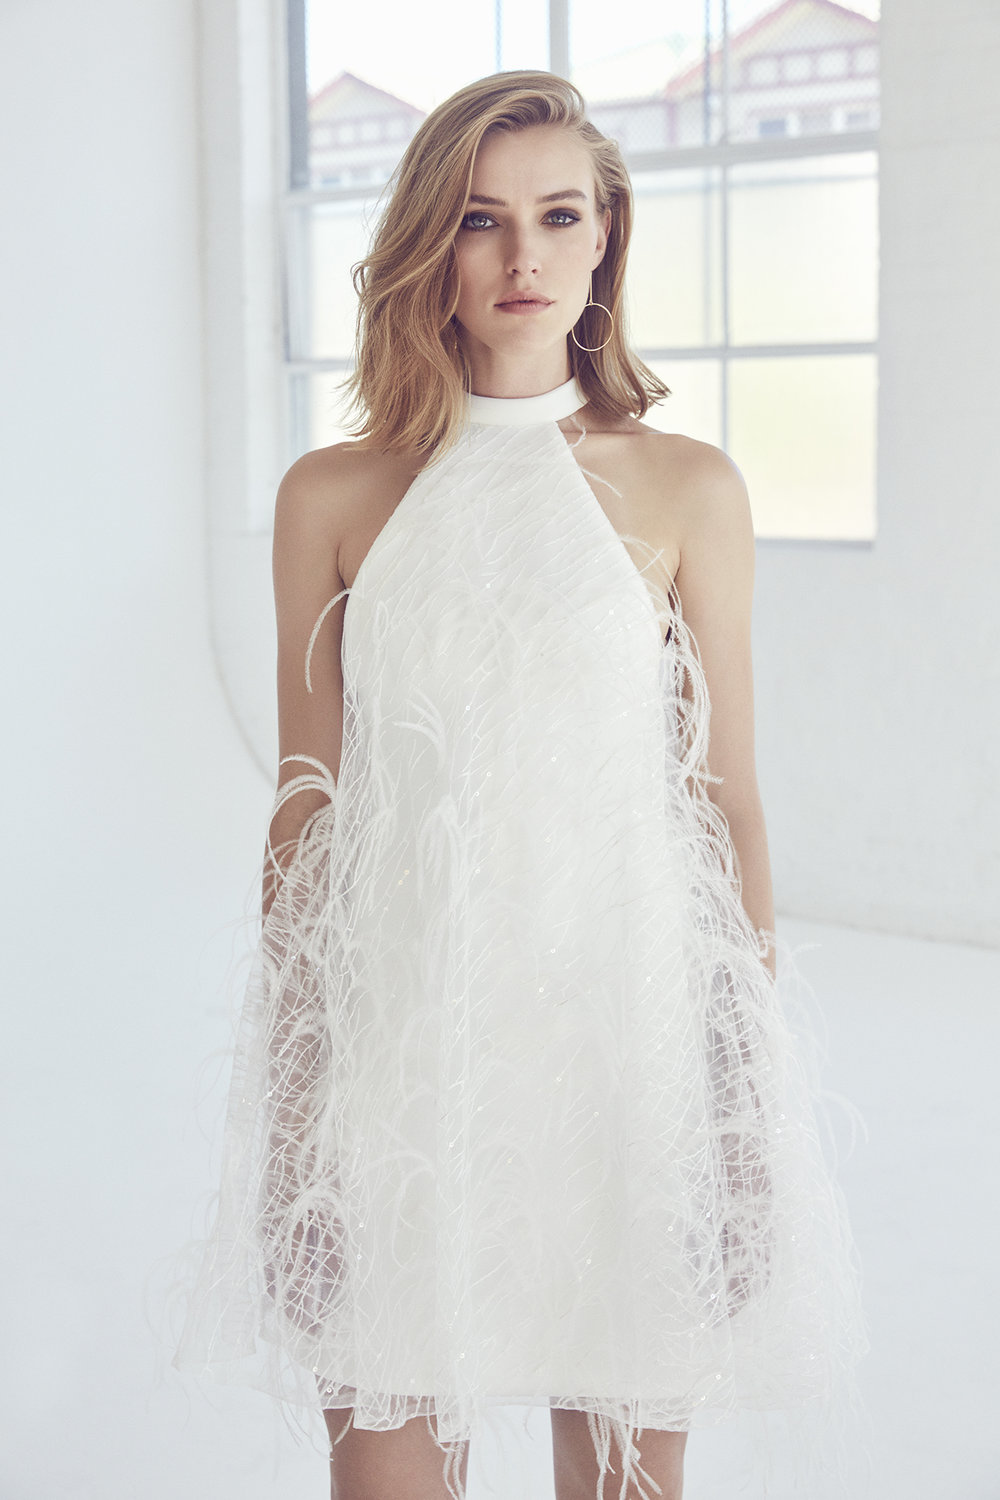 Halo Dress by Suzanne Harward | LOVE FIND CO.